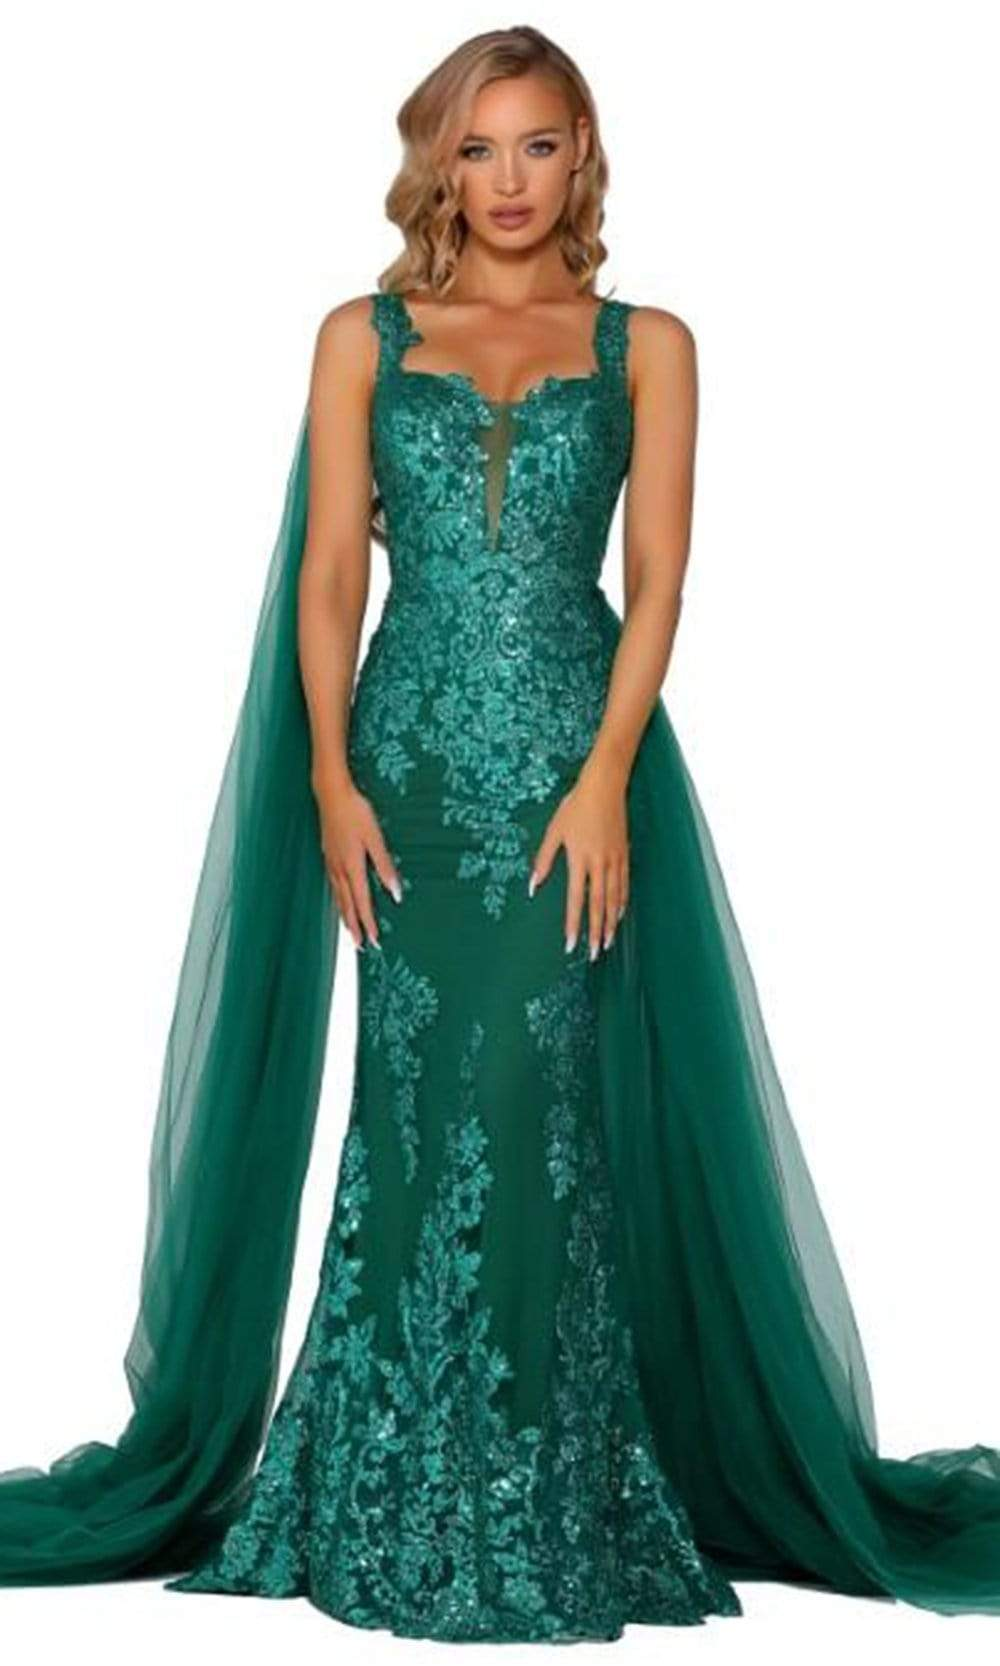 Portia and Scarlett - PS5011 Sequin Embroidery Drape Cape Evening Gown from Portia and Scarlett